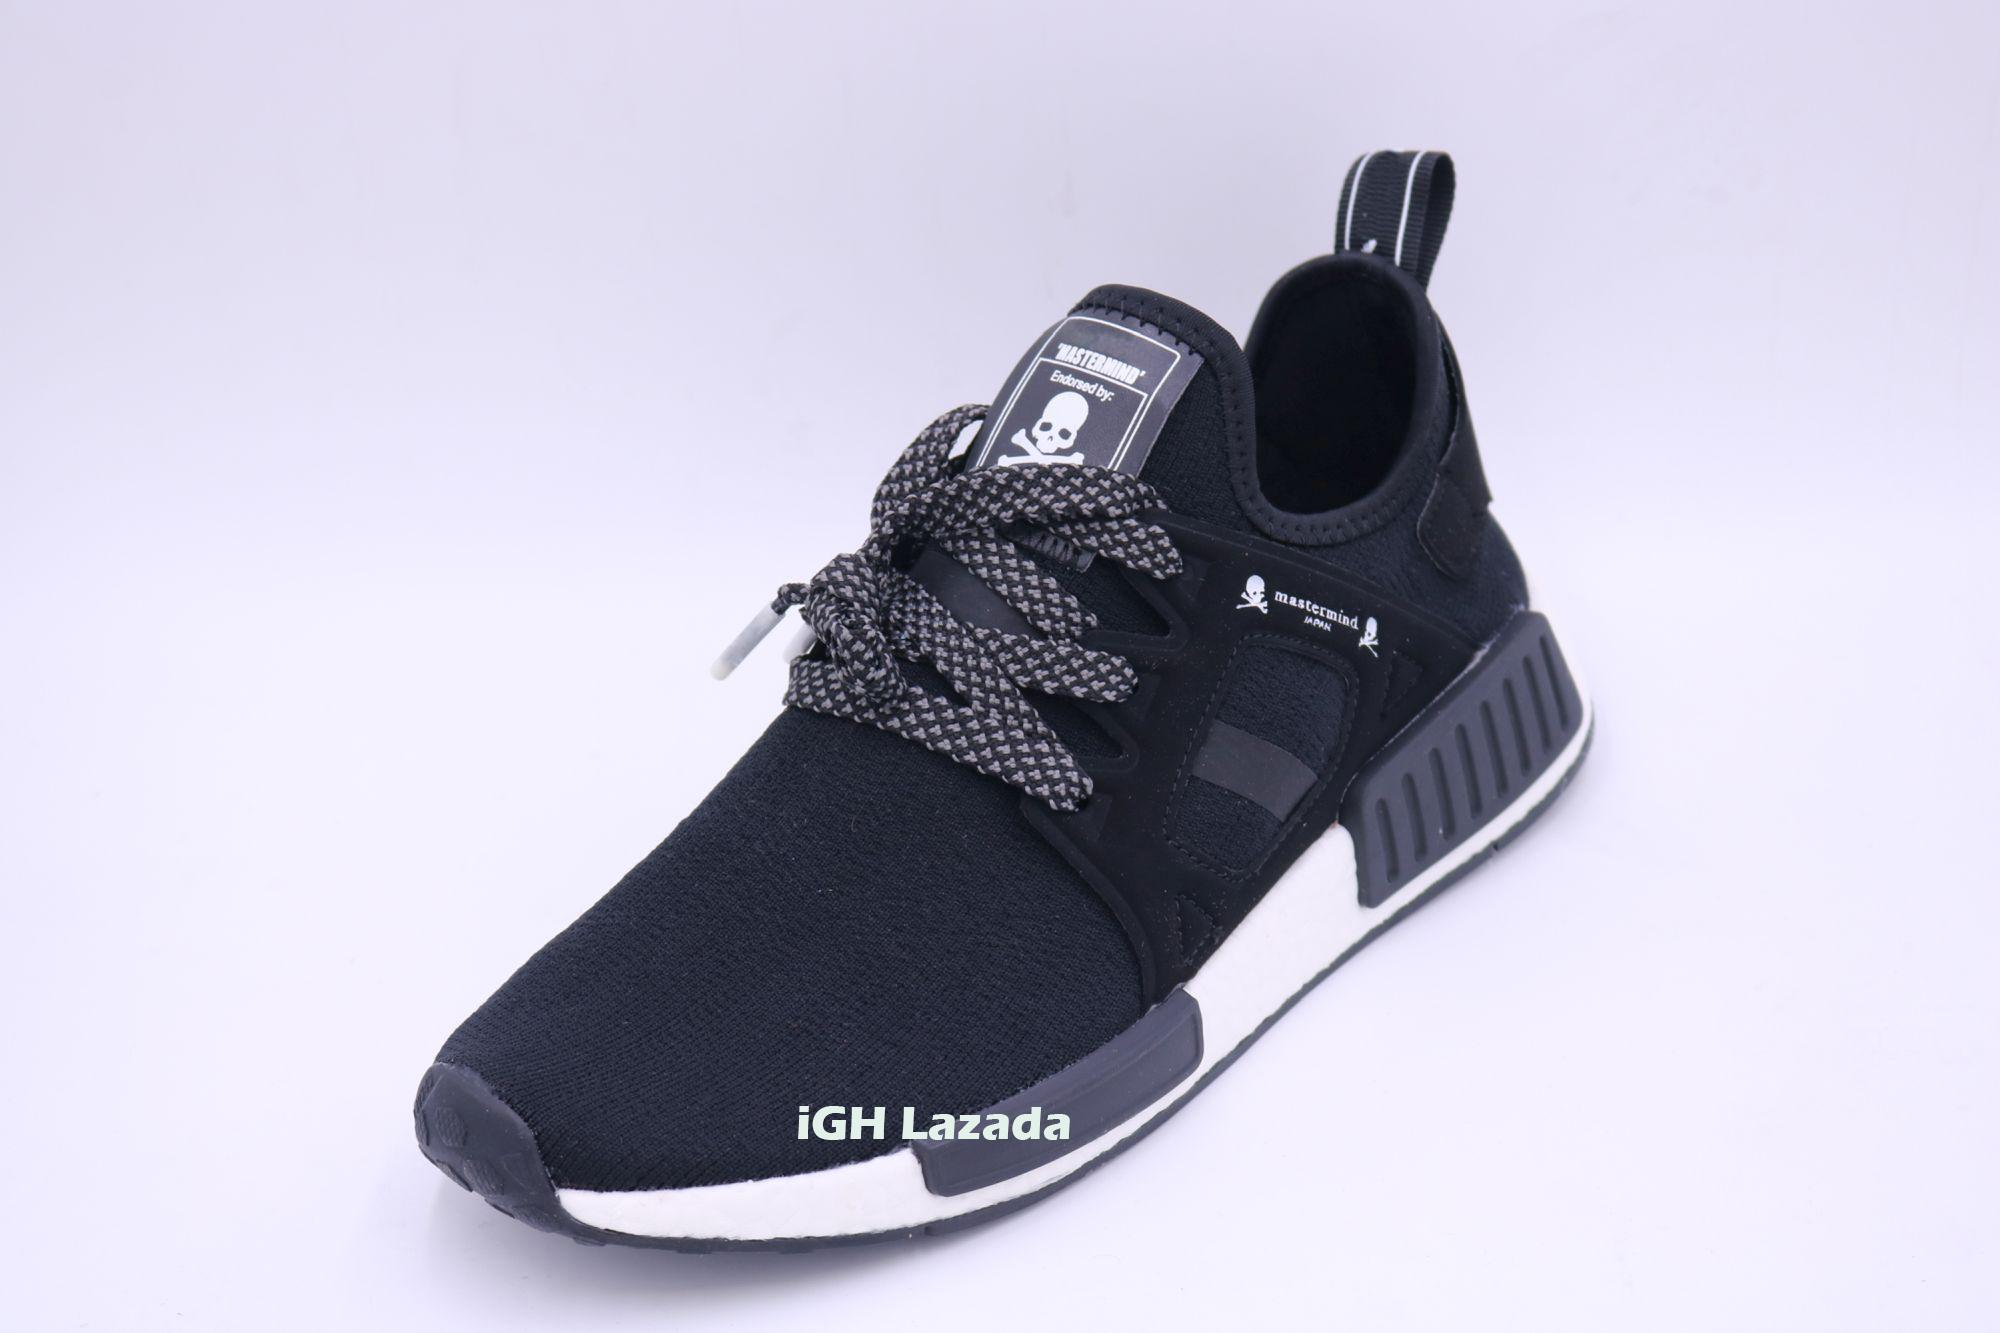 MEN NMD Mastermind Japan X XR1 Fashion Sneakers Running Shoes (Black) - 2